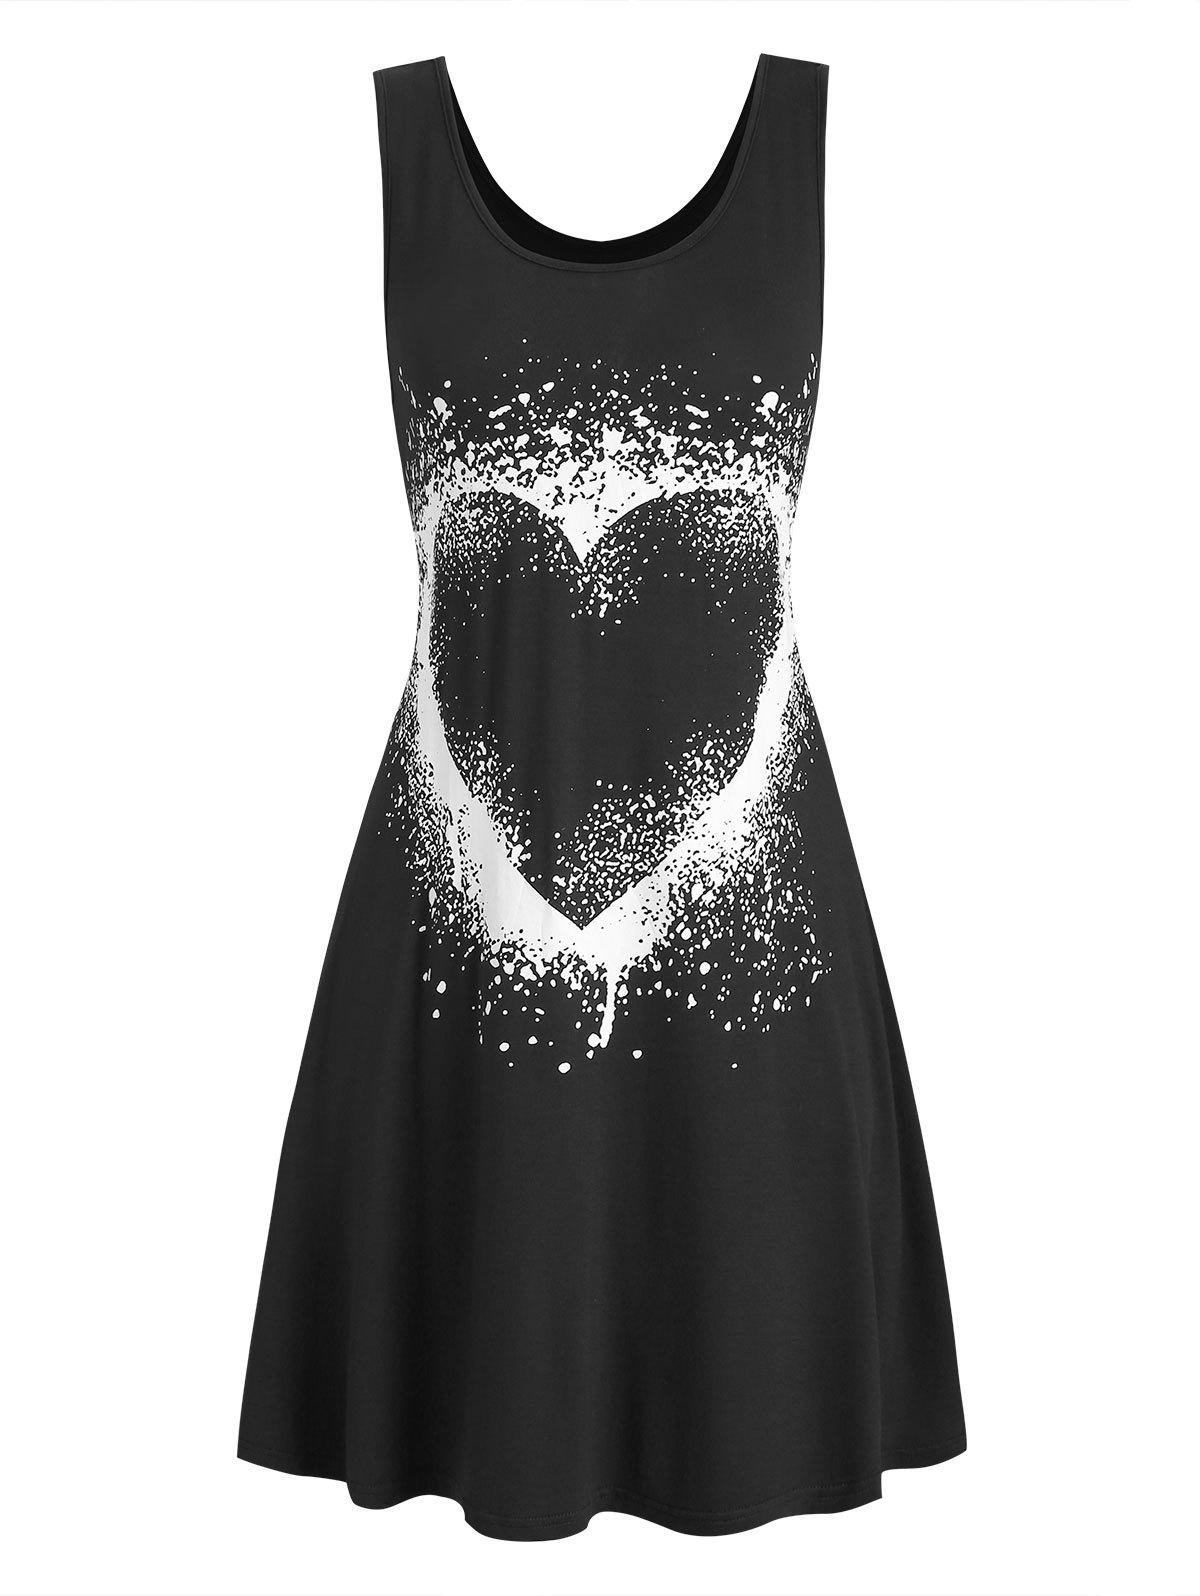 Affordable Heart Graphic Casual Tank Skater Dress